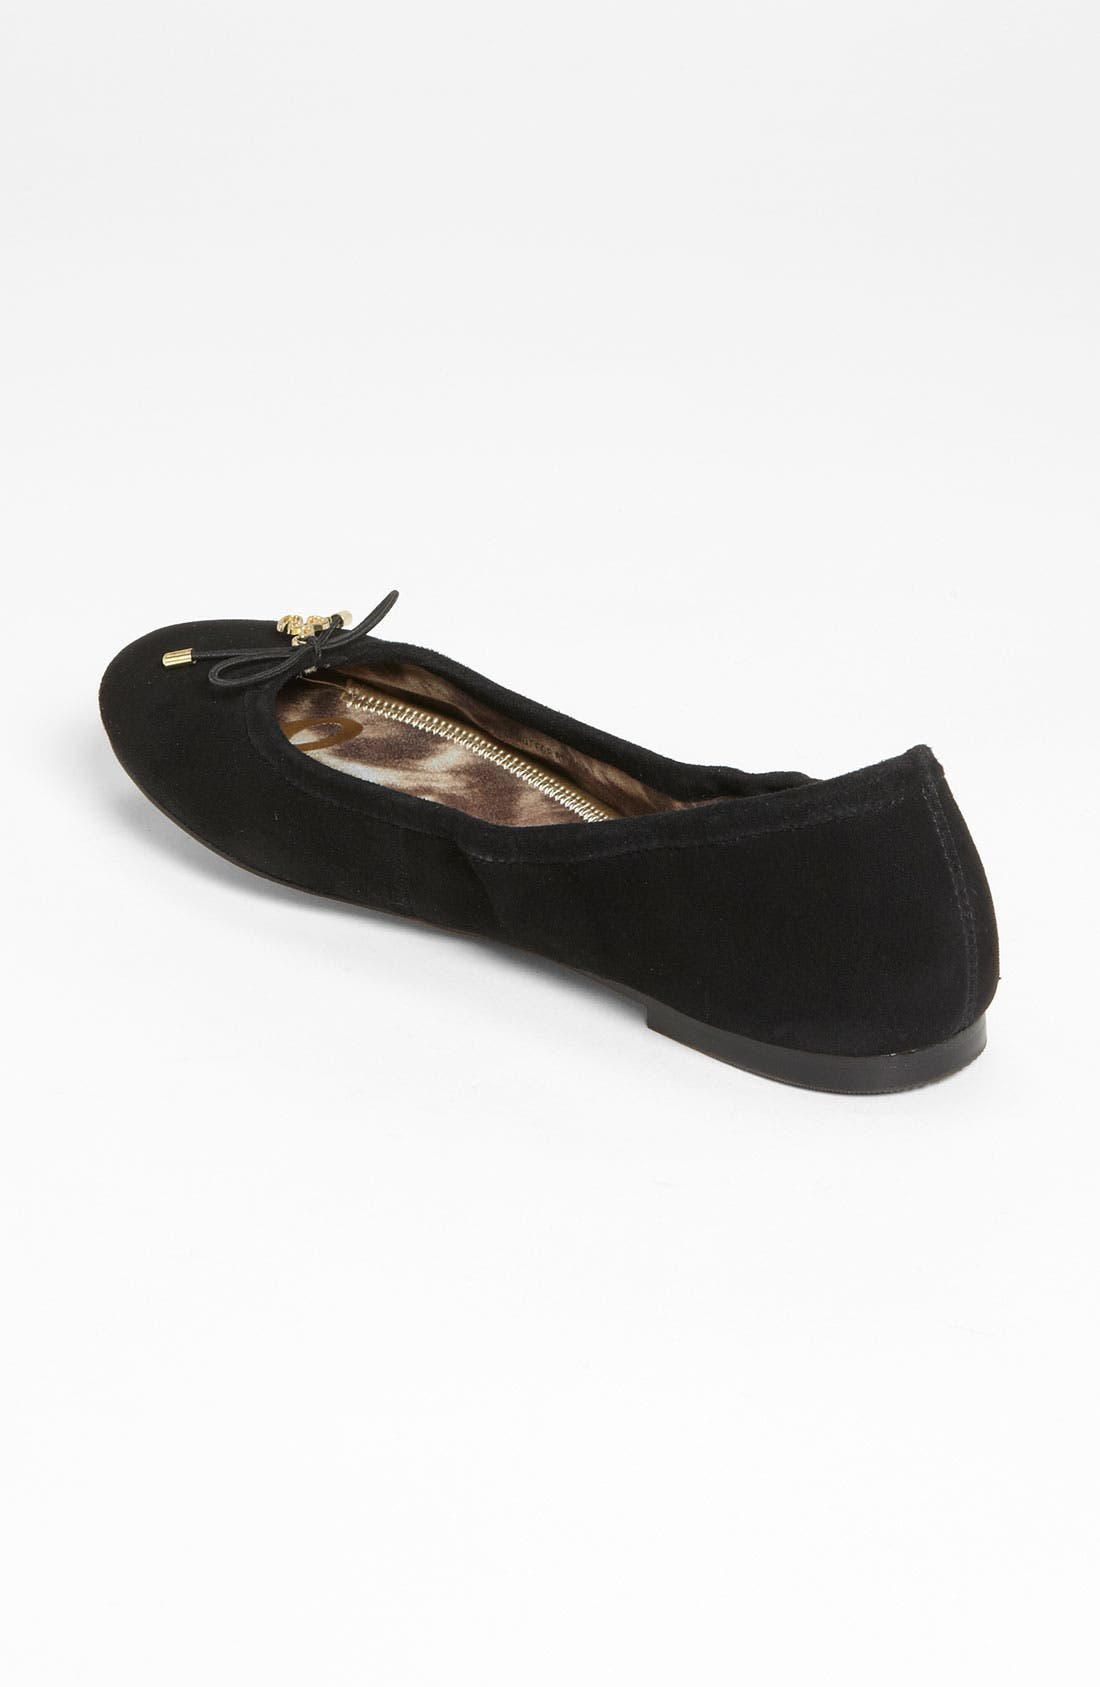 SAM EDELMAN, Felicia Flat, Alternate thumbnail 6, color, BLACK SUEDE